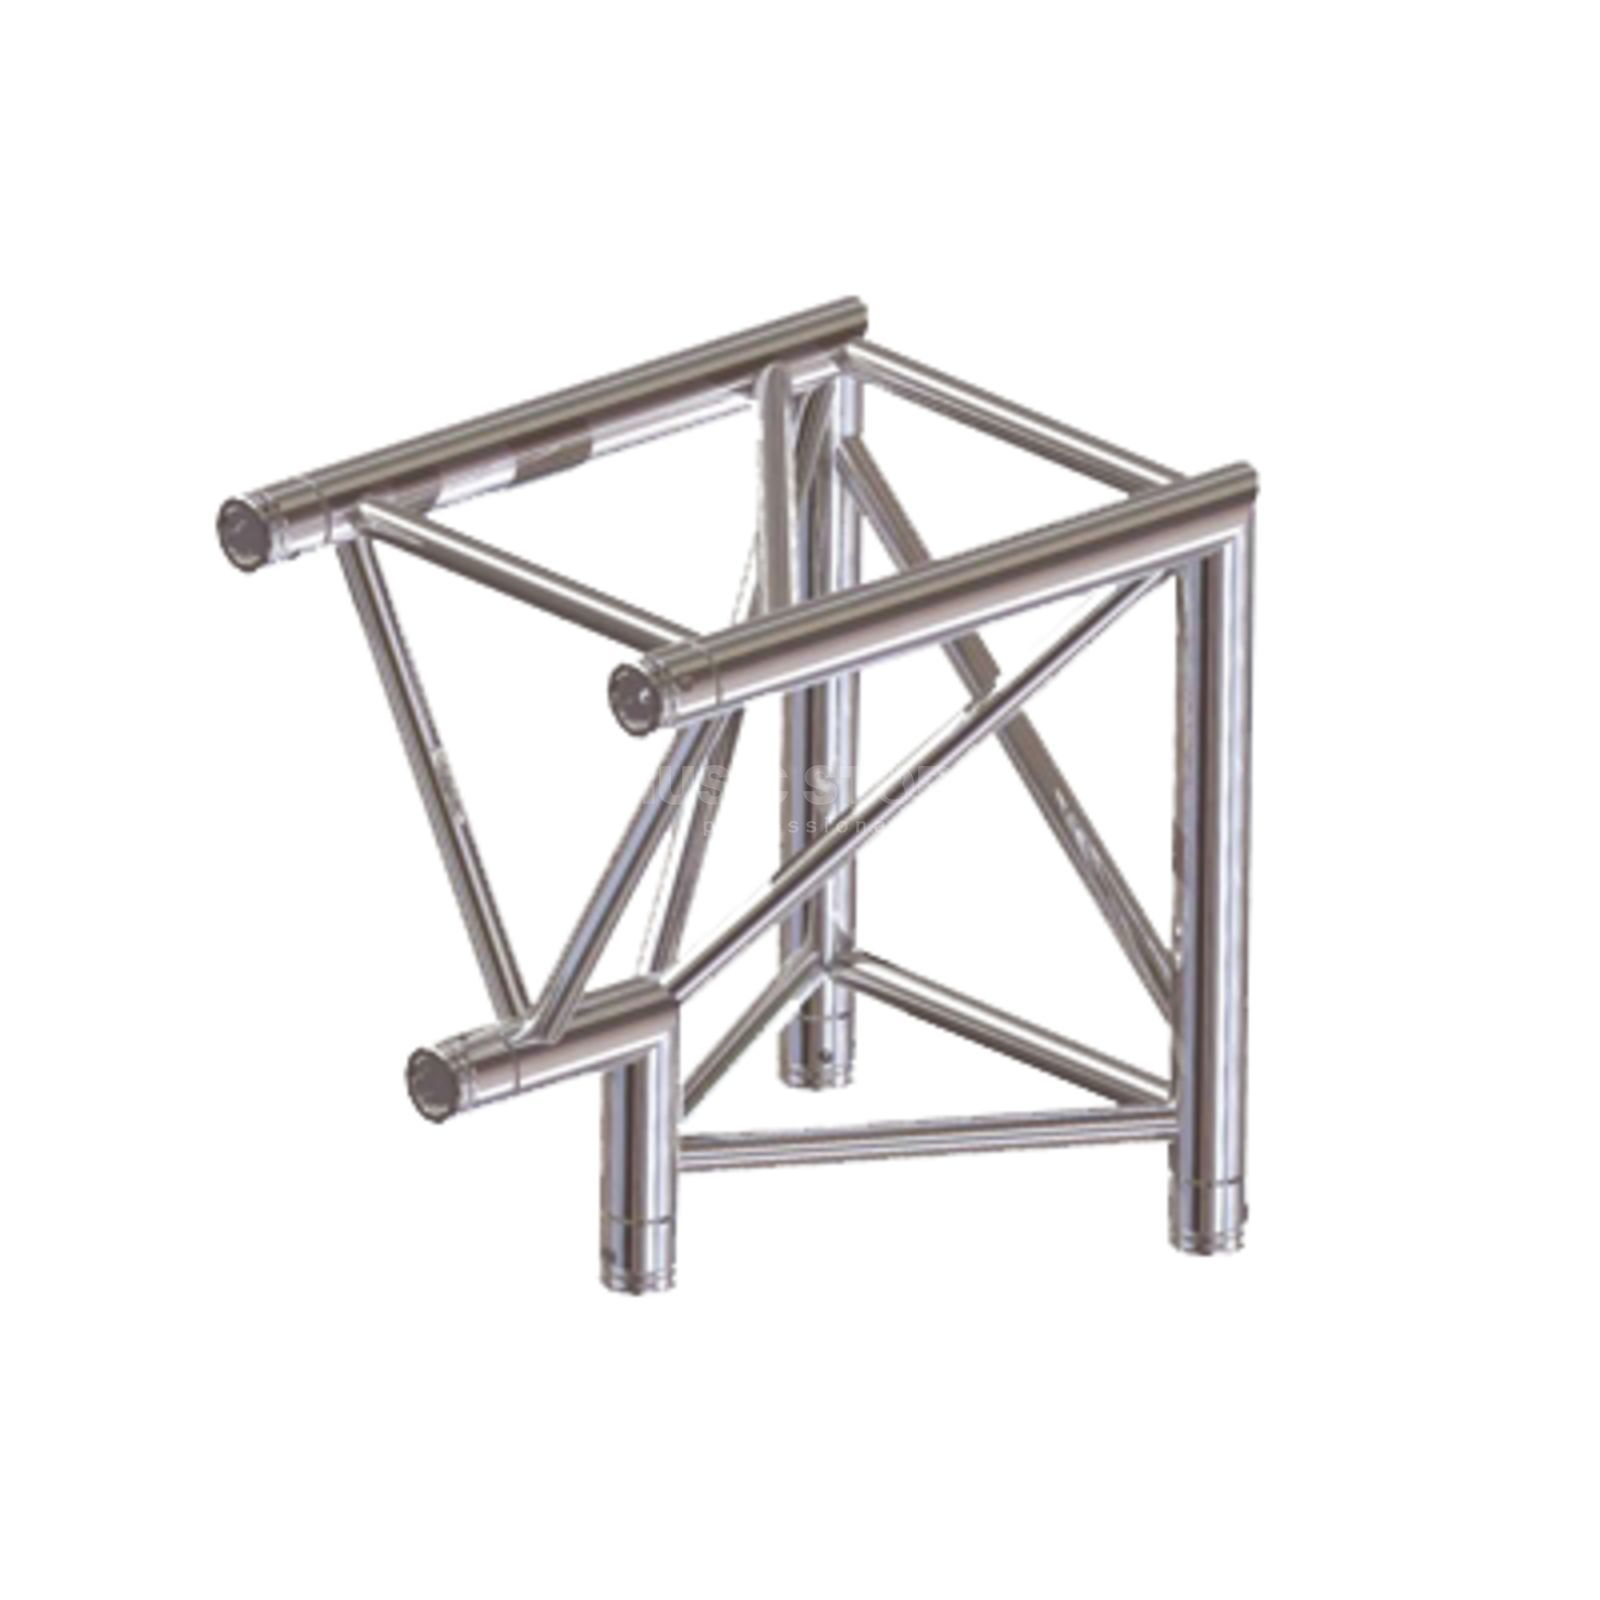 Global Truss F43 2-Way Corner C25 90°  Produktbillede